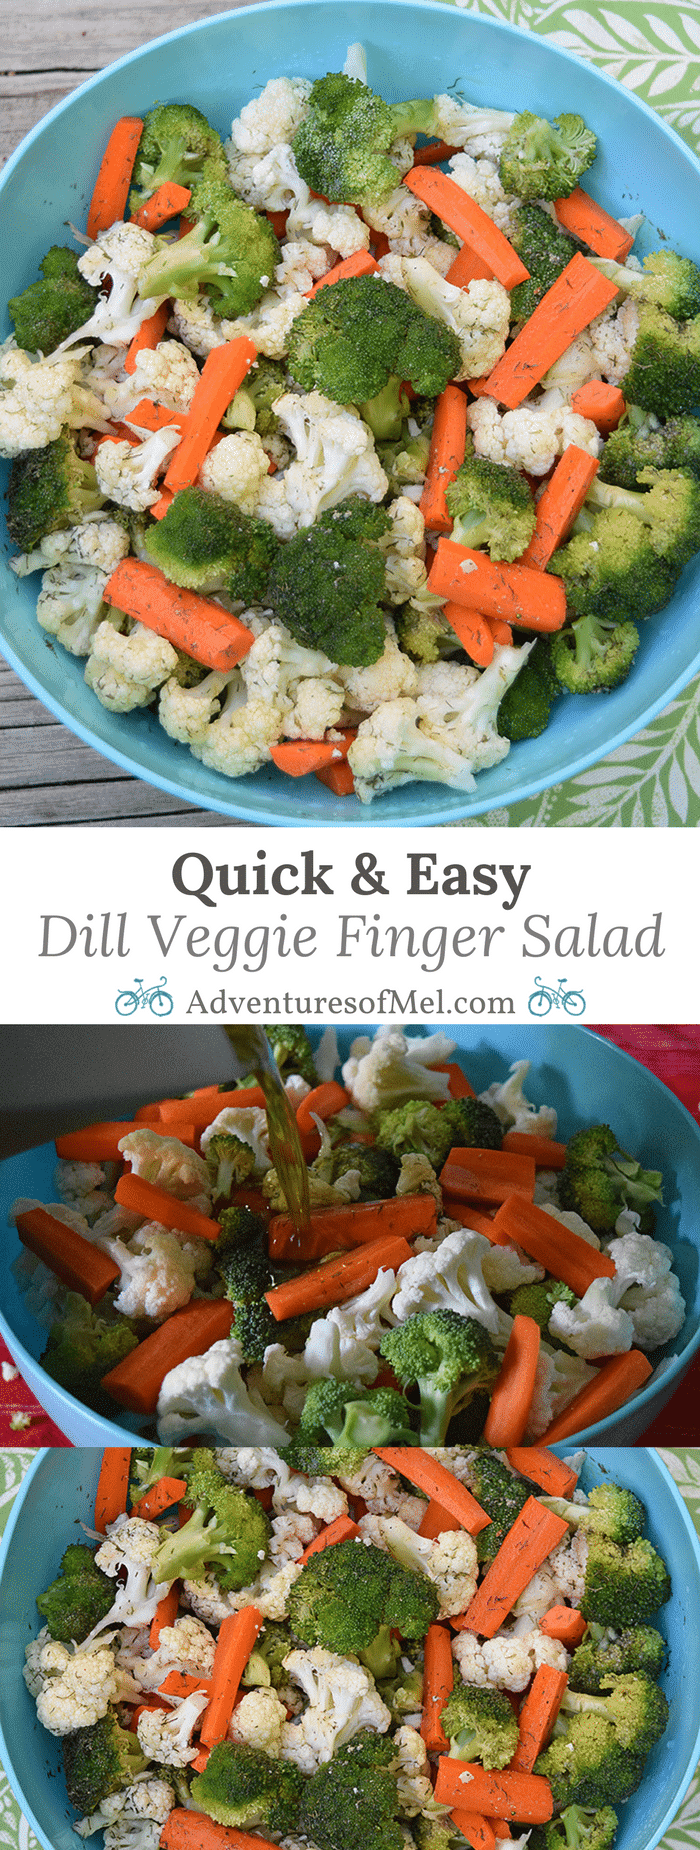 This quick and easy Dill Veggie Finger Salad is such a simple salad and absolutely perfect for summer BBQ's and get togethers. Or for a time like right now when I'm really craving fresh crunchy vegetables. How to make this delicious side dish recipe!